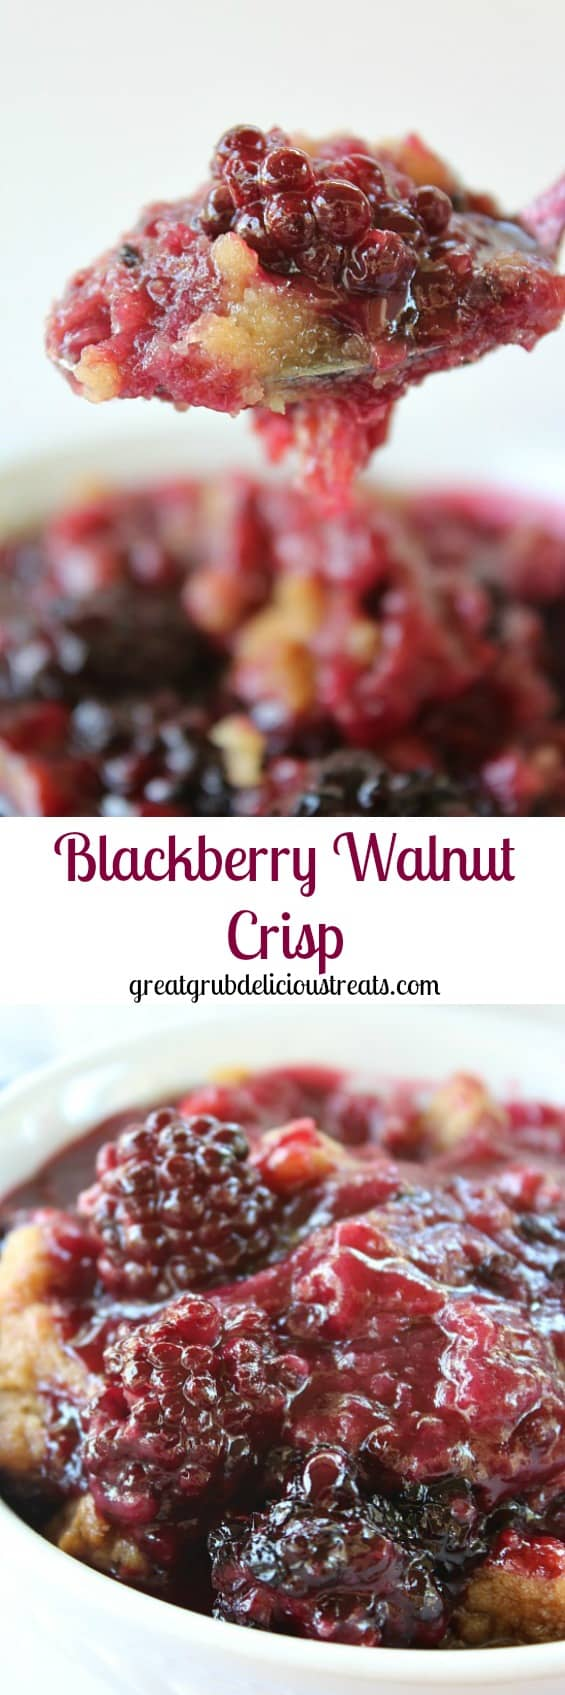 Blackberry Walnut Crisp